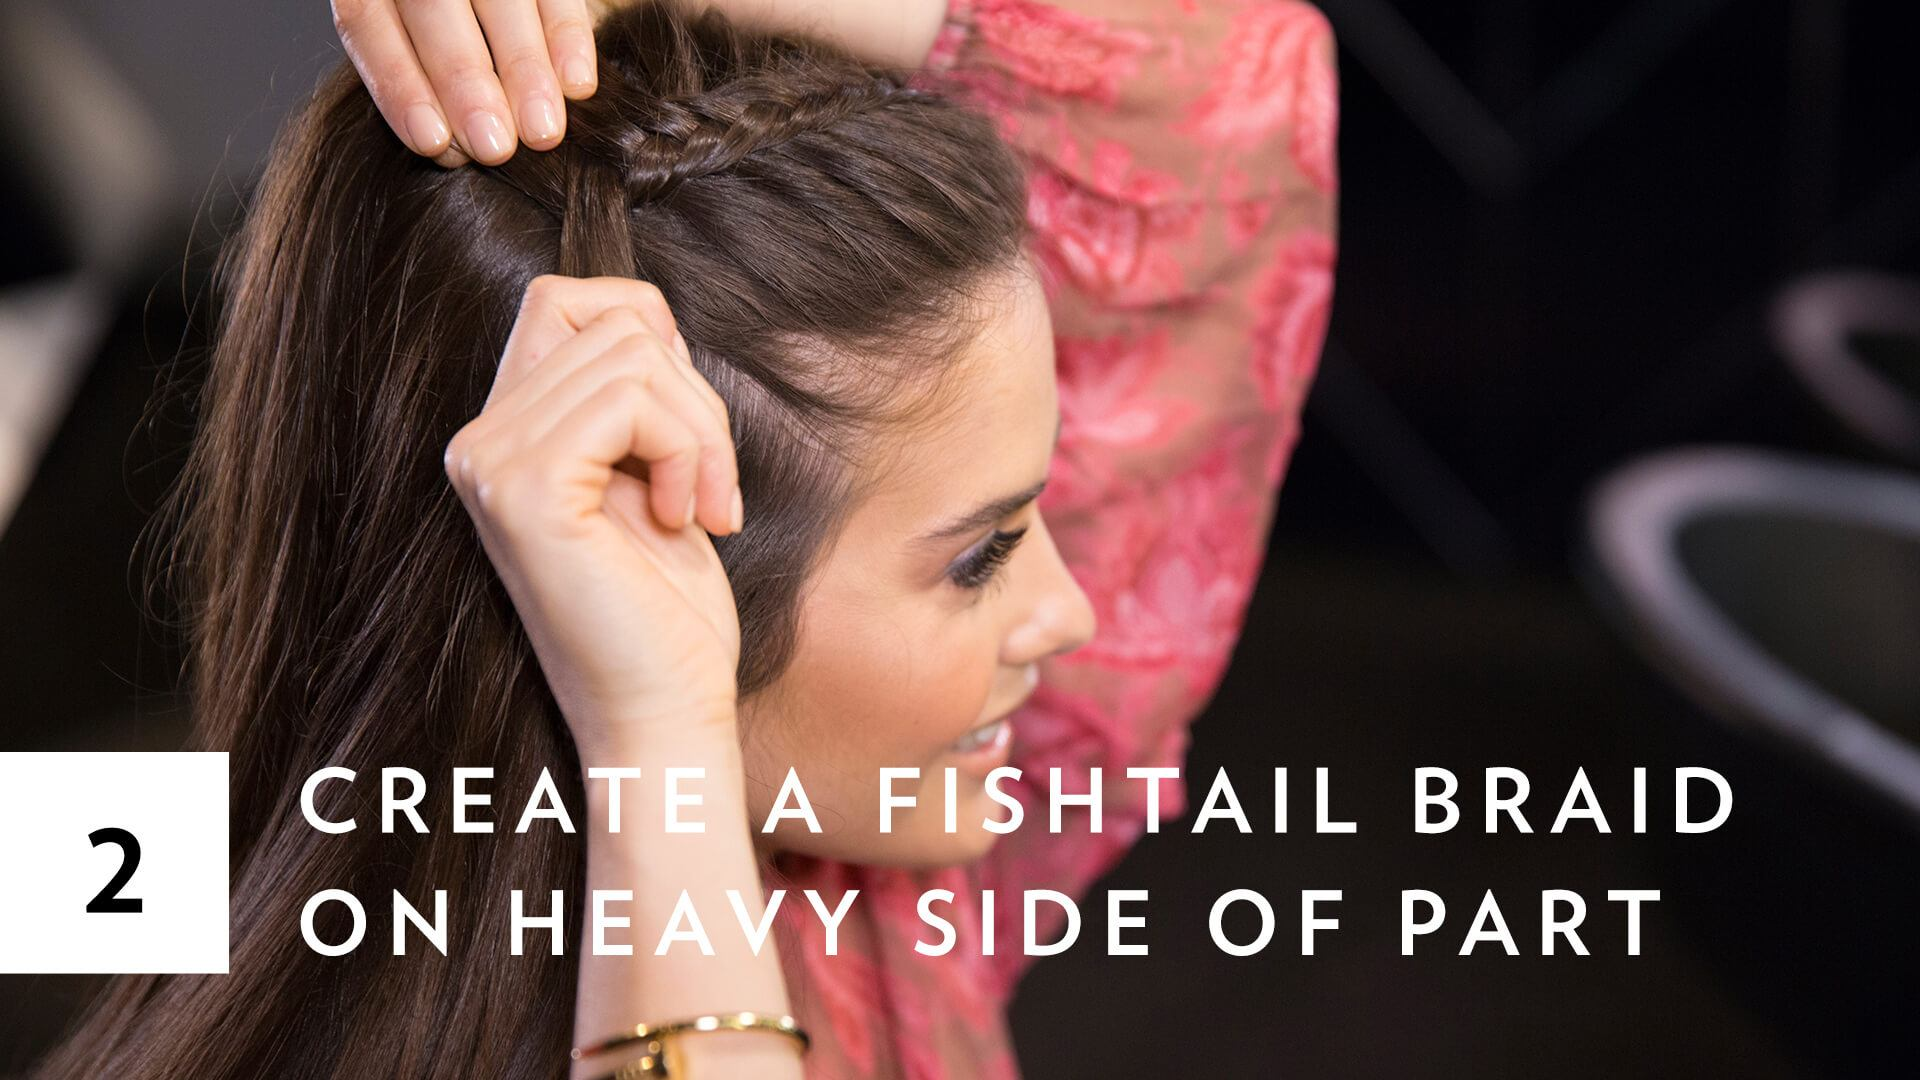 blogger Paola Alberdi from Blank Itinerary creating mermaid fishtail braid plaits